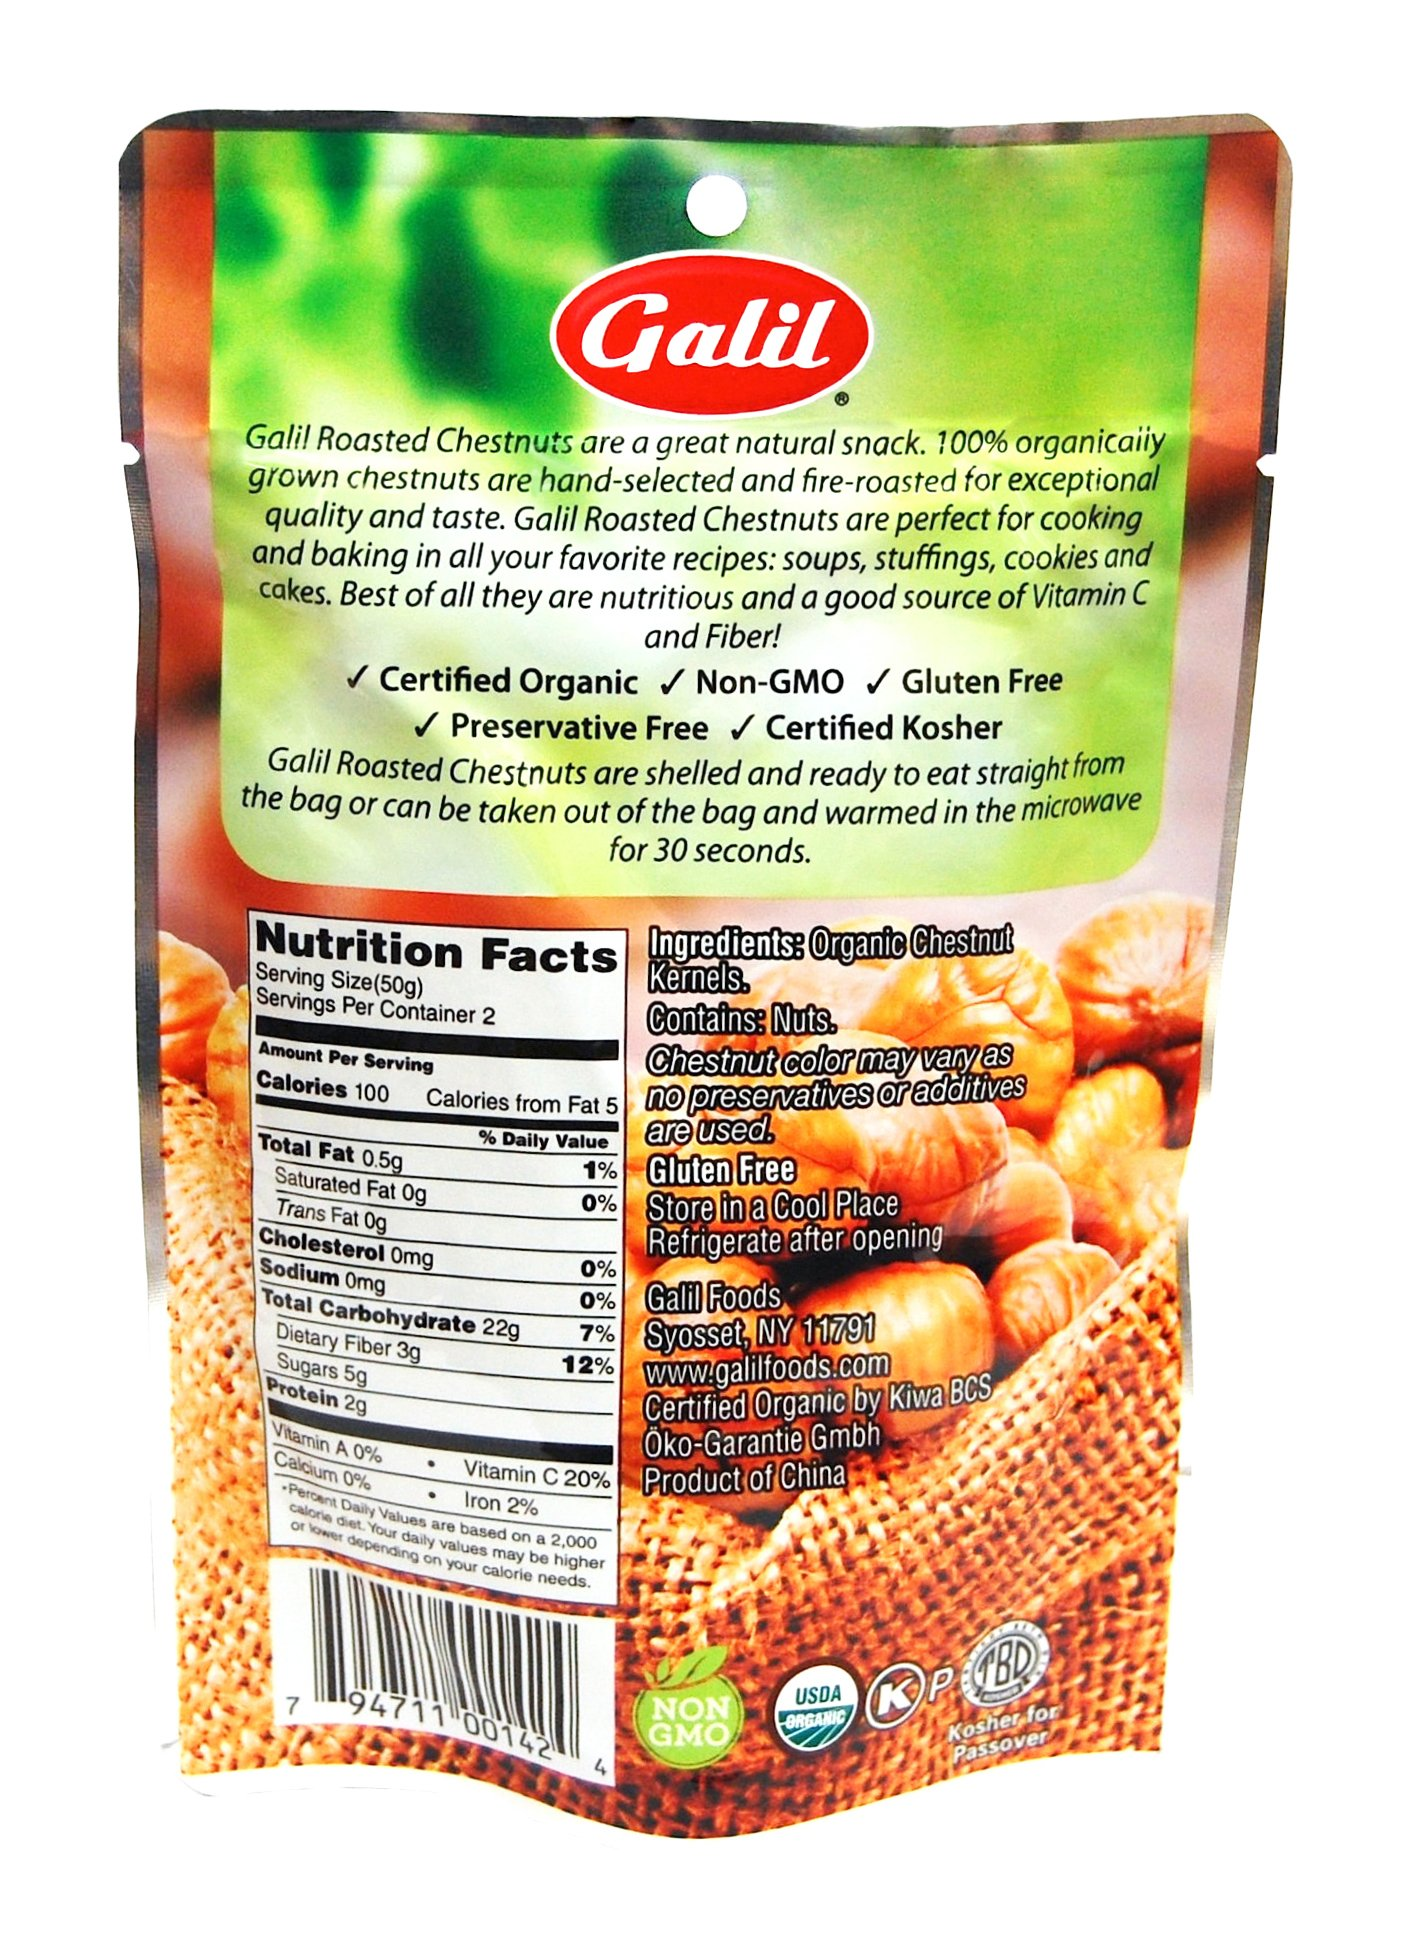 Galil 100% Organic Whole Roasted Chestnuts, 3.5-Ounce Bags (Pack of 24) by Galil (Image #2)